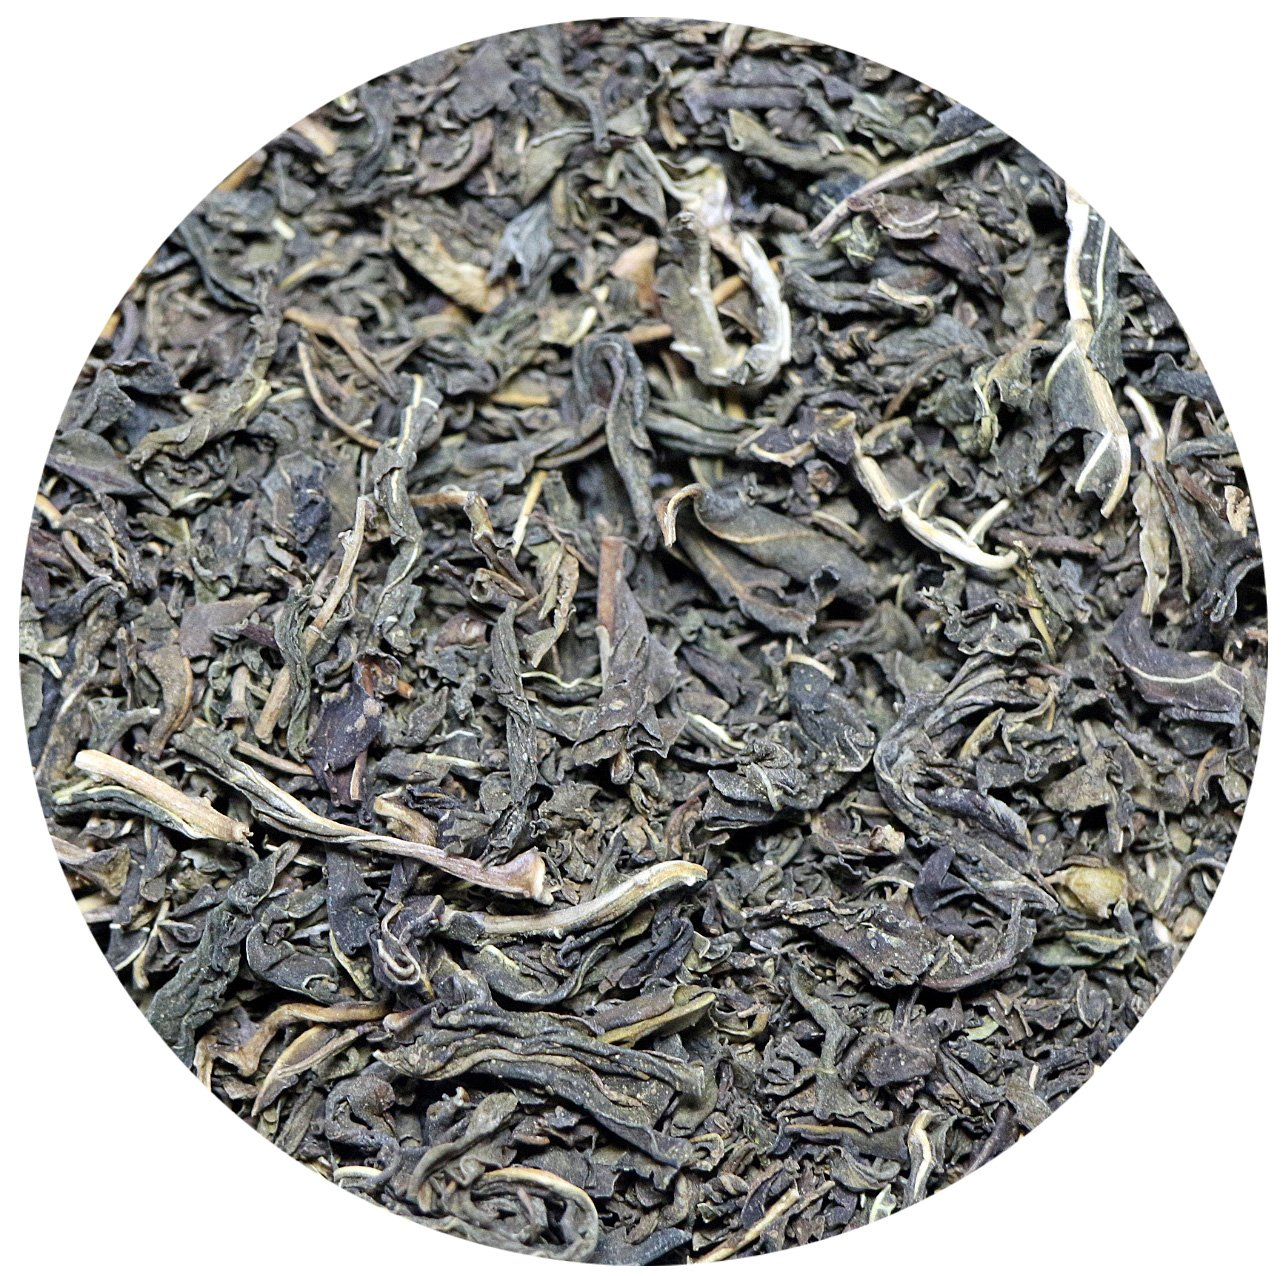 ? Of health tea and herbal tea shop Haterin hydrangea tea 50g [other] by Unknown (Image #1)